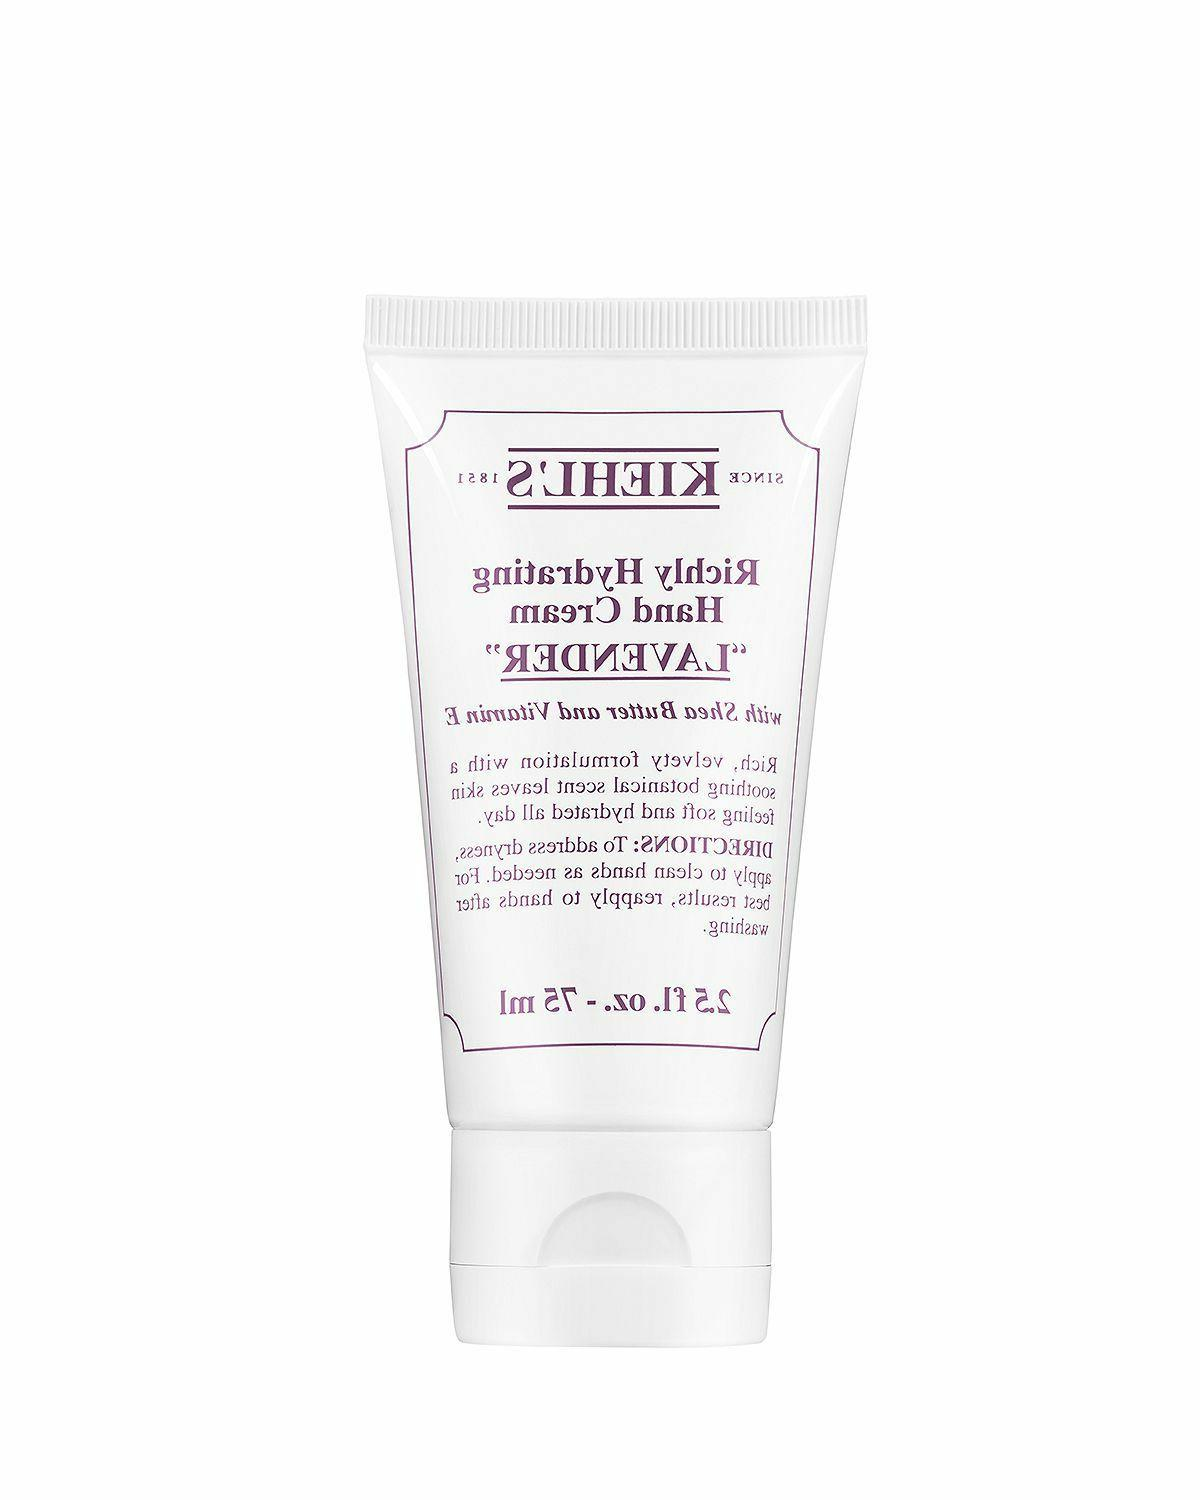 New Kiehl's Richly Hydrating Lavender Hand Cream 2.5 oz./75m